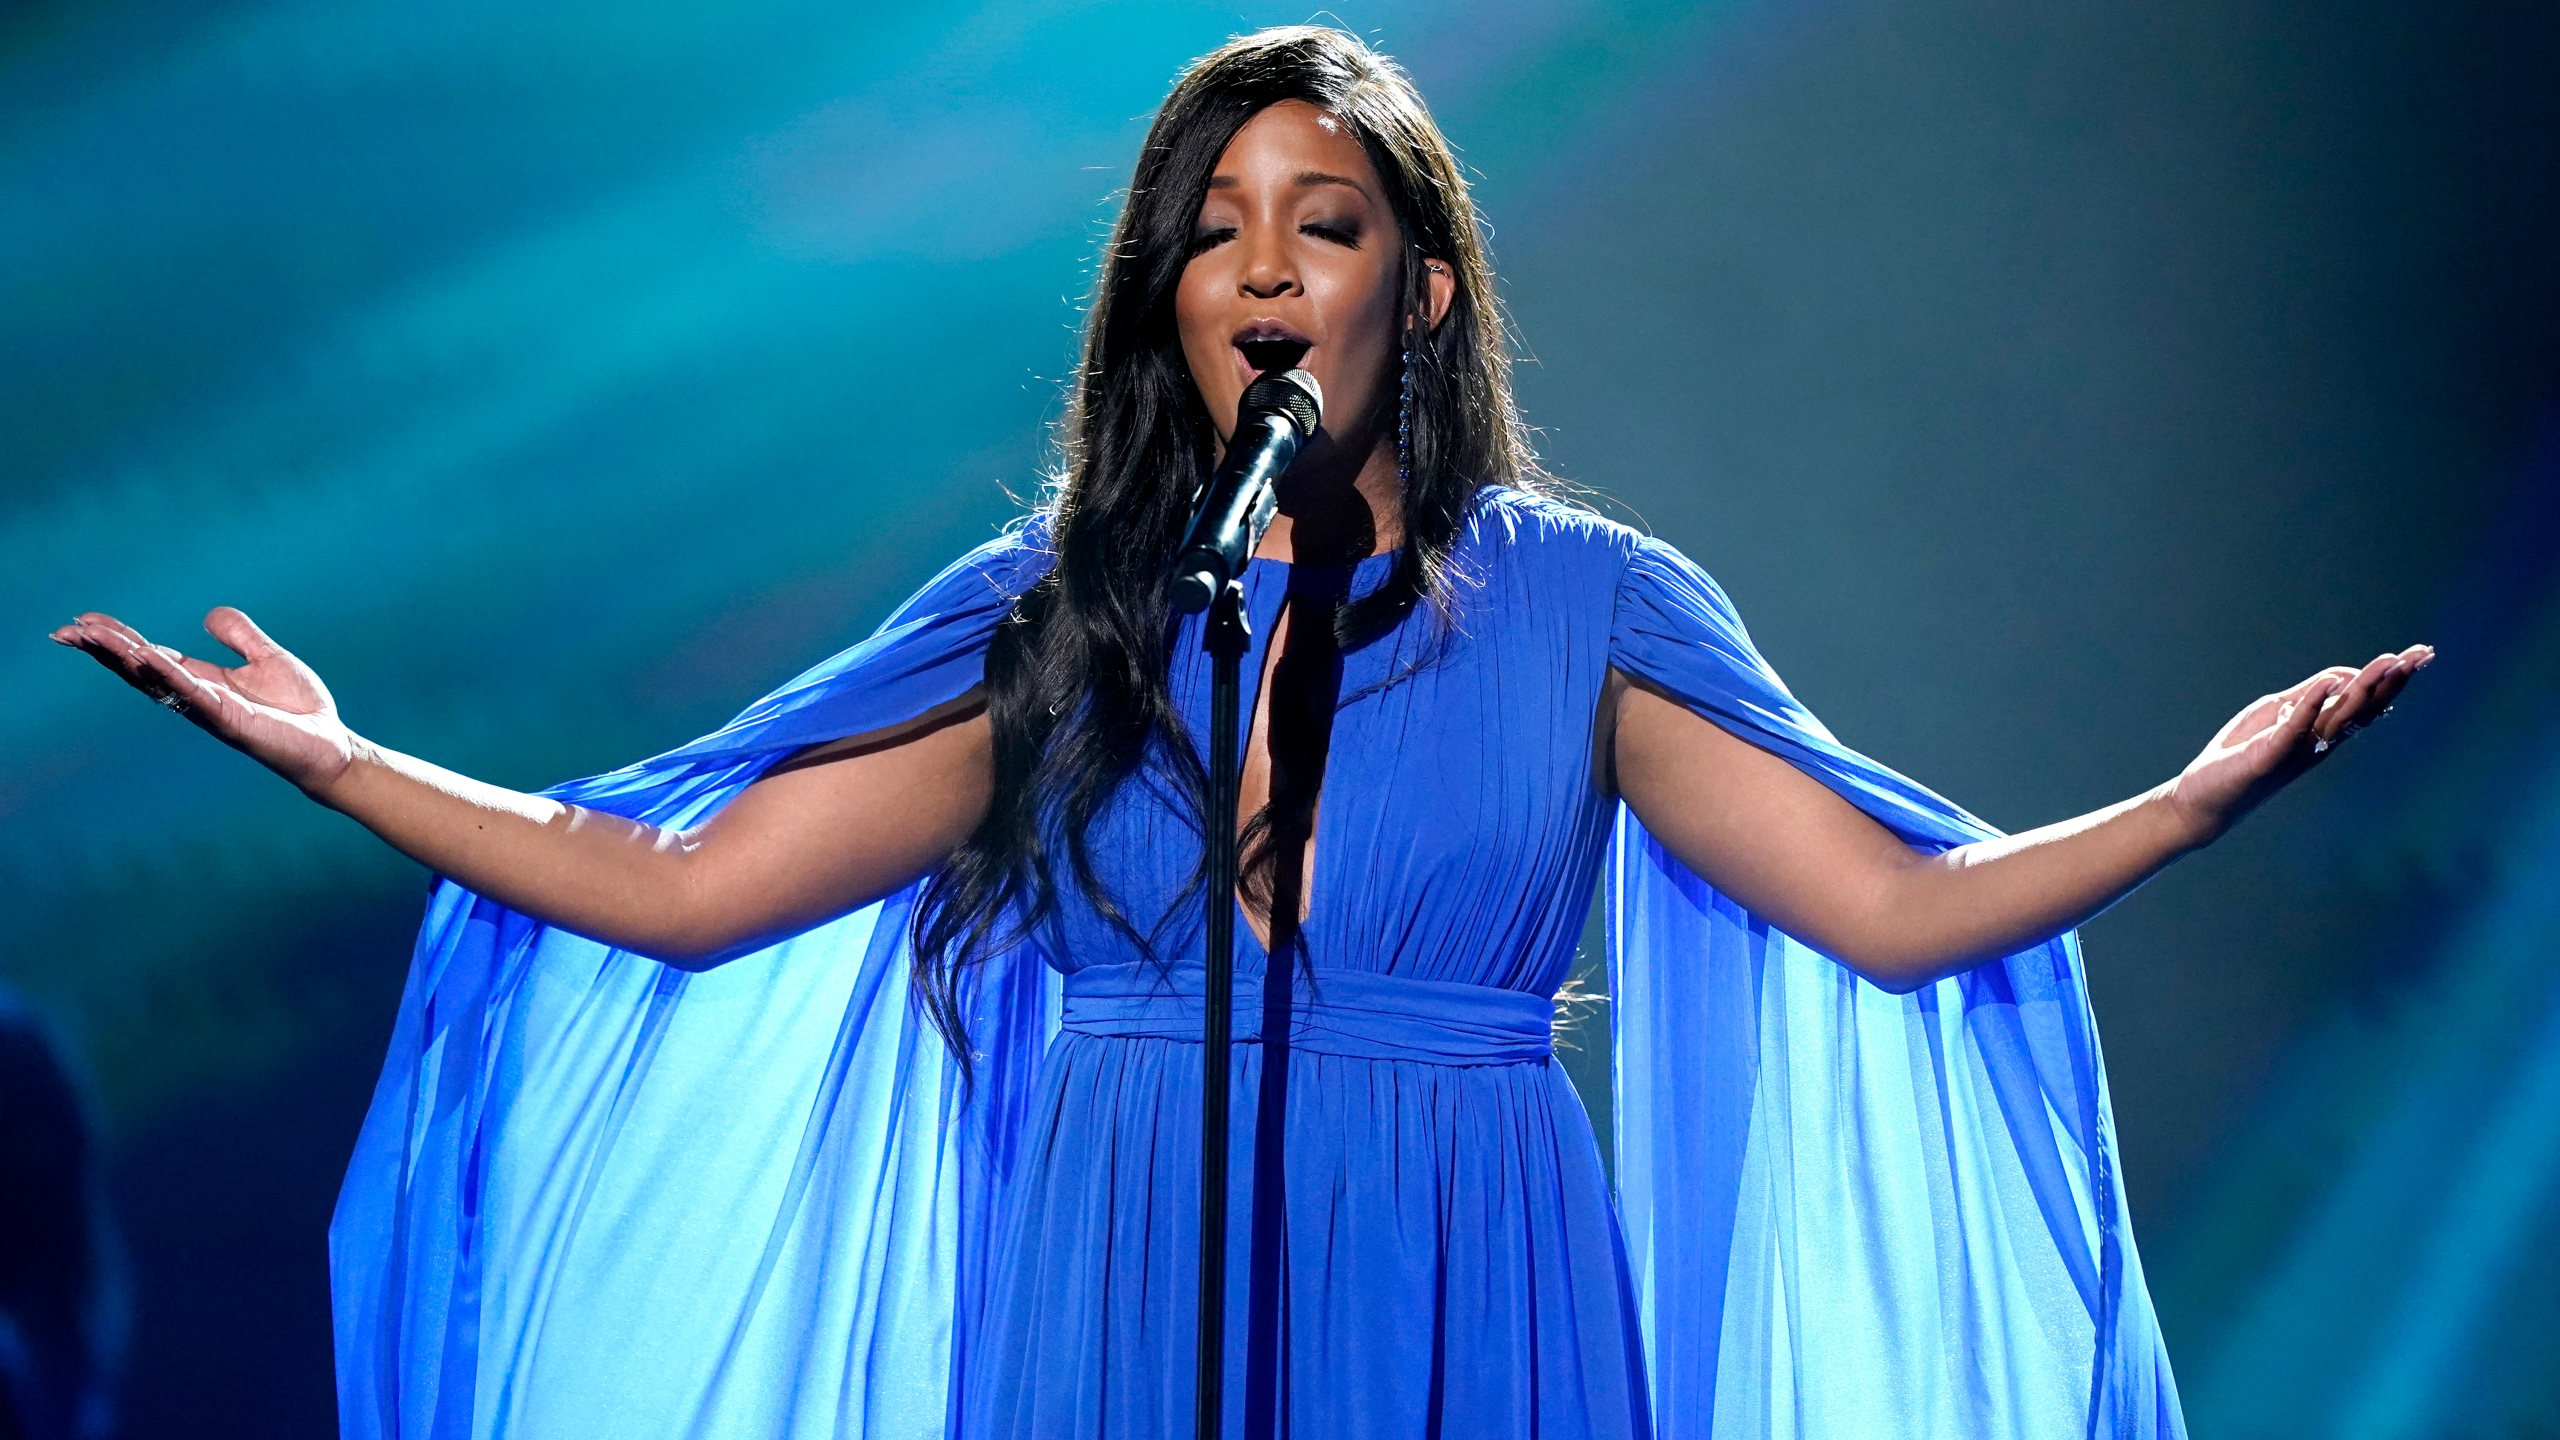 Mickey Guyton performs at the 56th annual Academy of Country Music Awards on Friday, April 16, 2021, at the Grand Ole Opry in Nashville, Tenn. (AP Photo/Mark Humphrey)